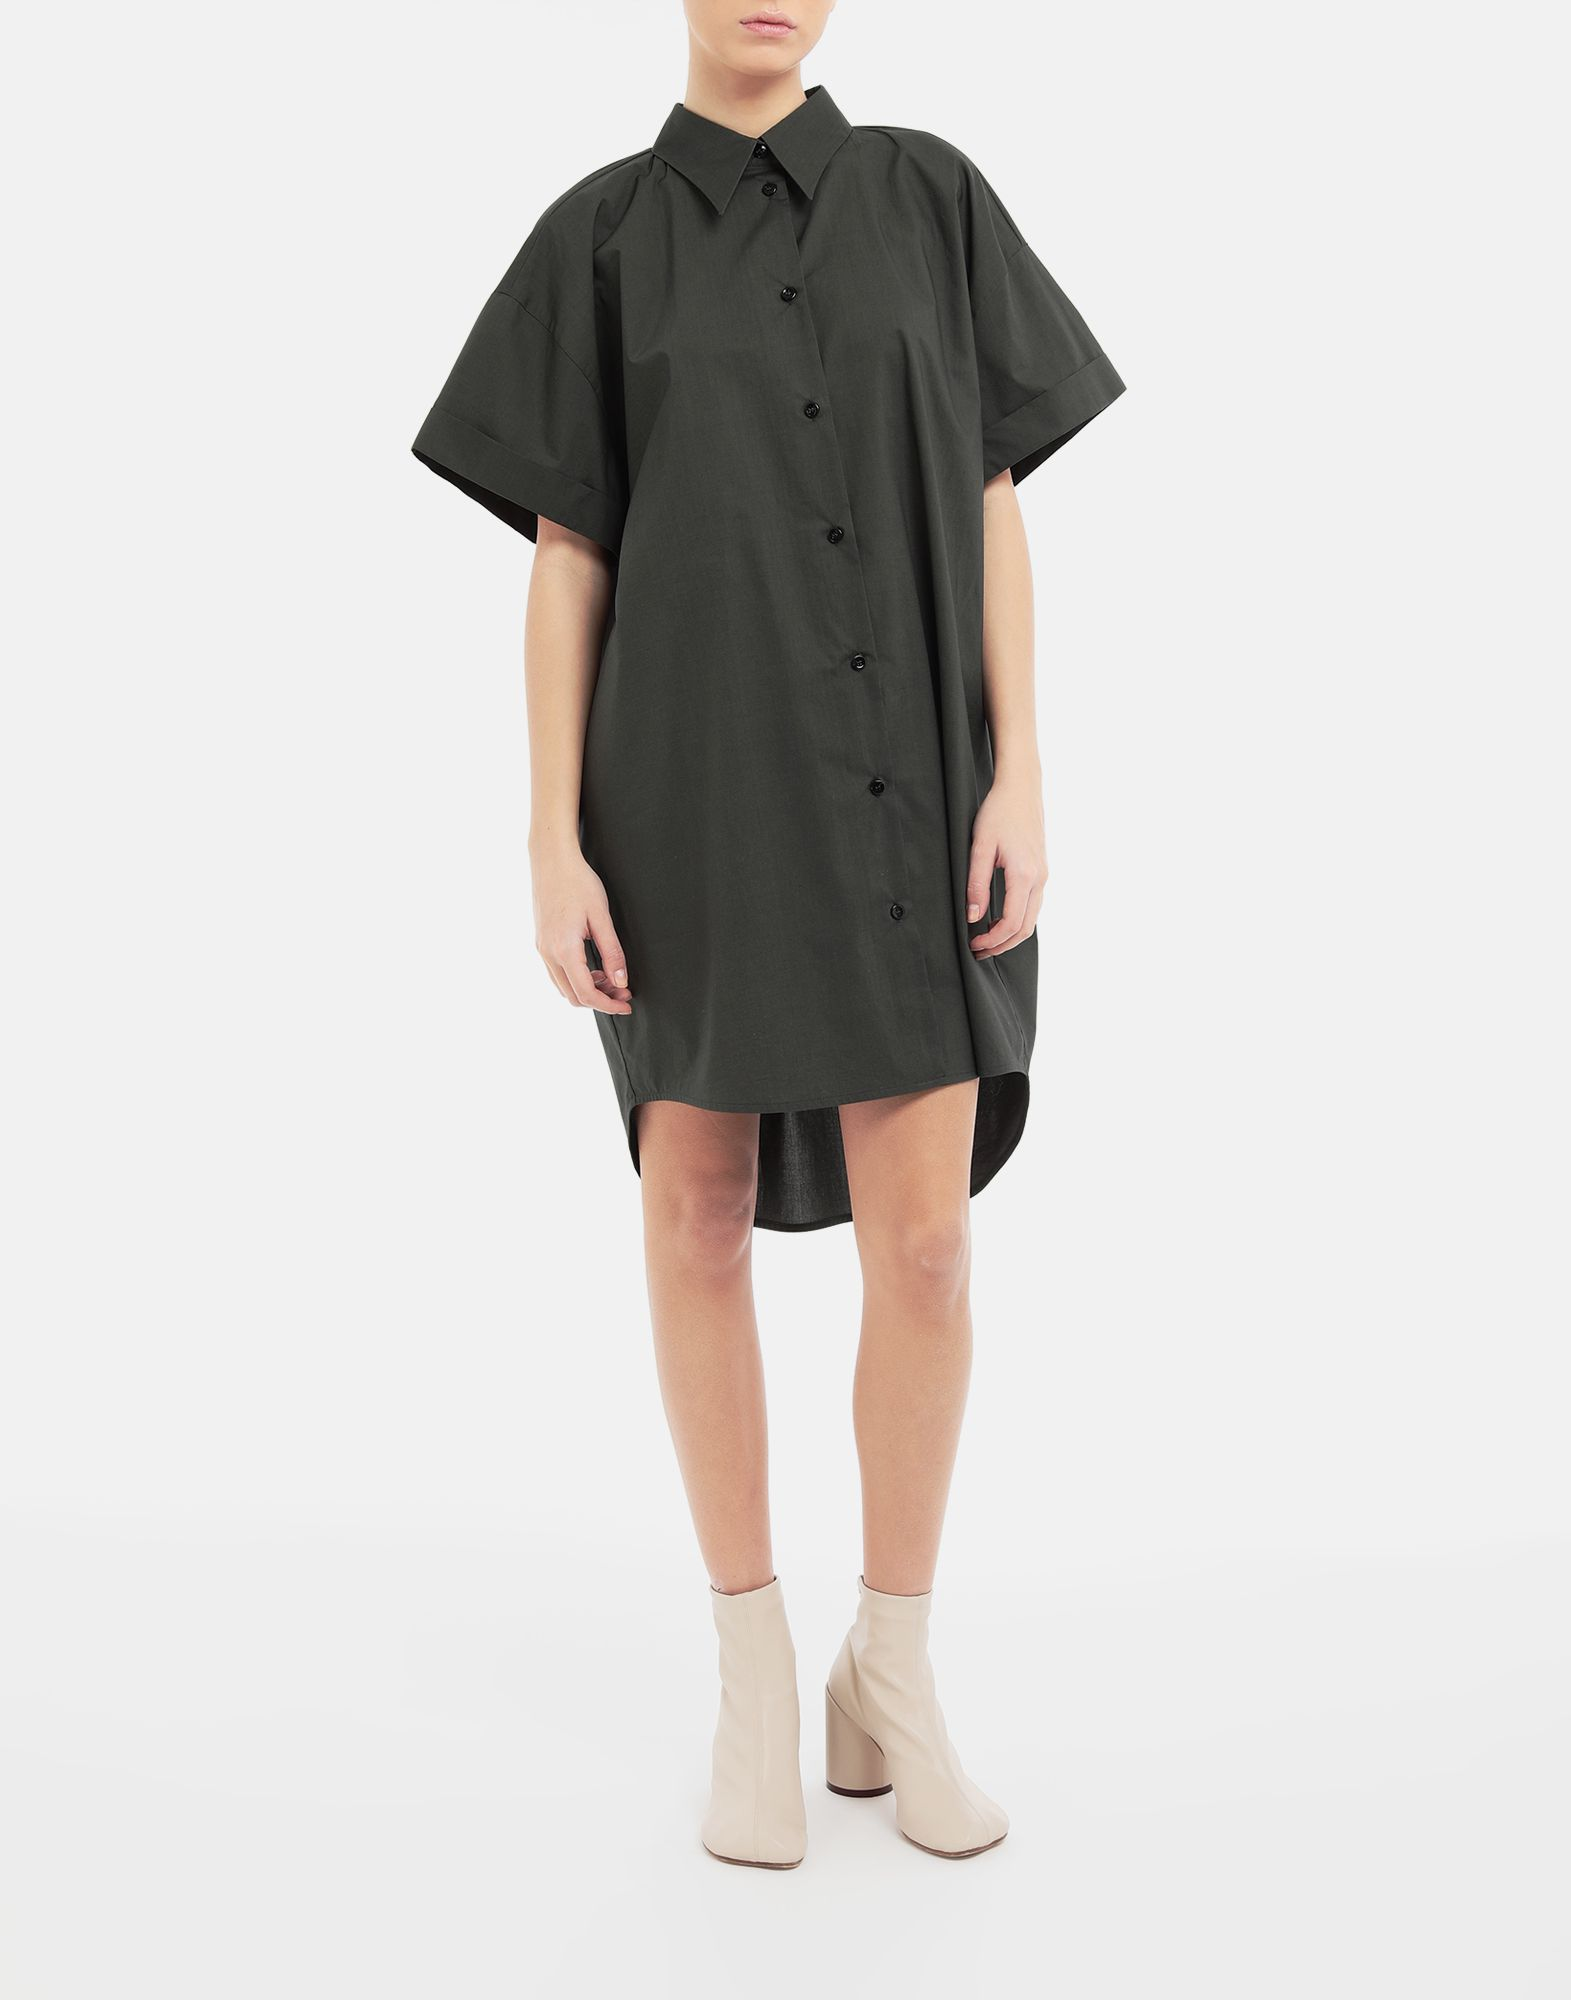 MM6 MAISON MARGIELA Oversized shirt-dress Dress Woman r